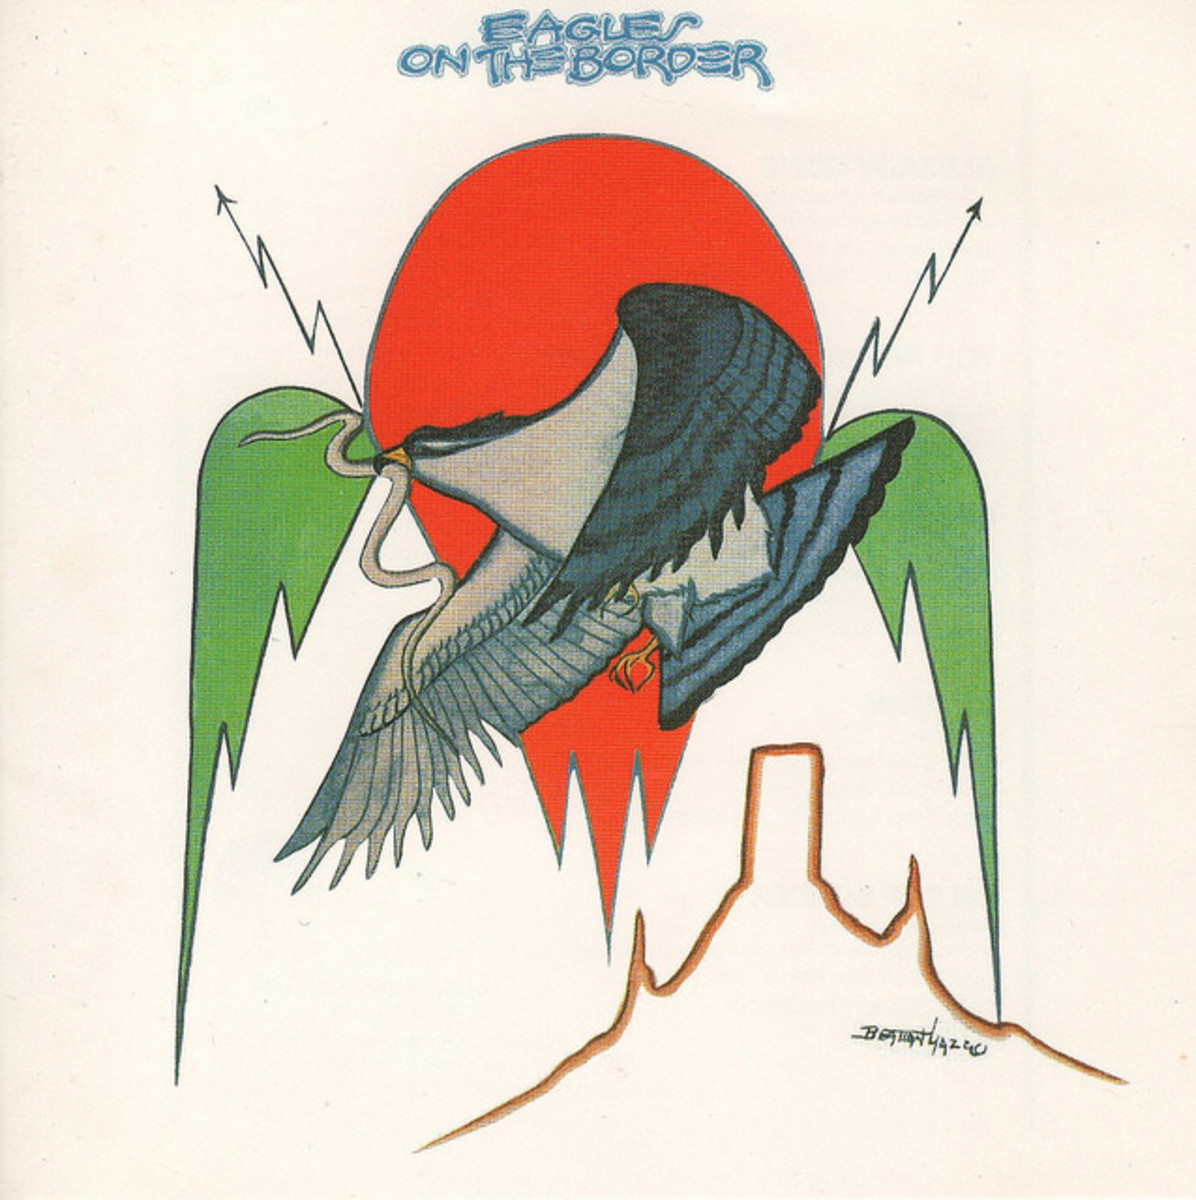 "Eagles ""On the Border"" Asylum Records 7E-1004 12"" LP Vinyl Record, US Pressing (1974) Cover Art by Native American Navajo Artist"